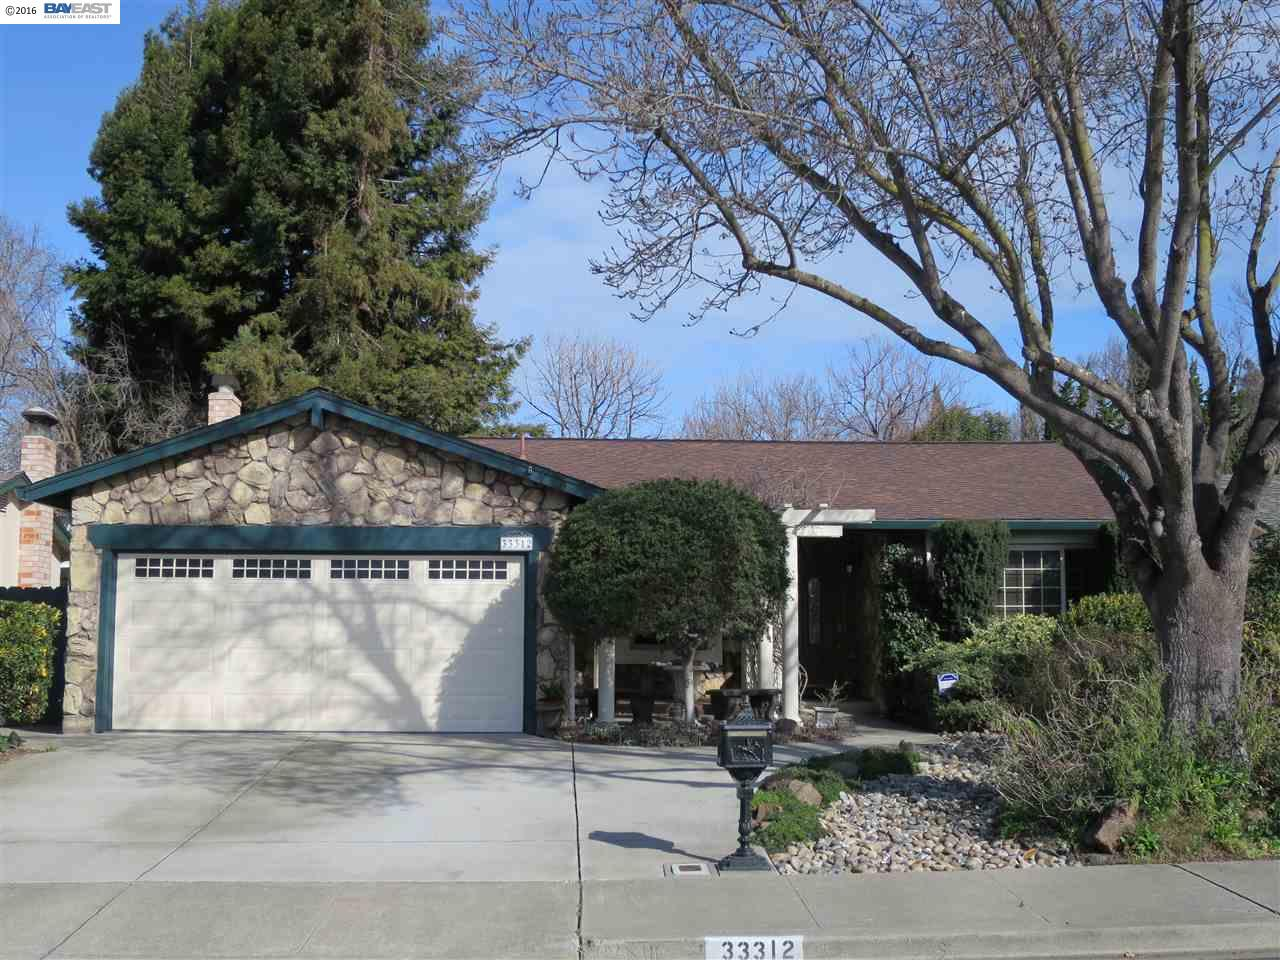 33312 Arizona St, Union City, CA 94587